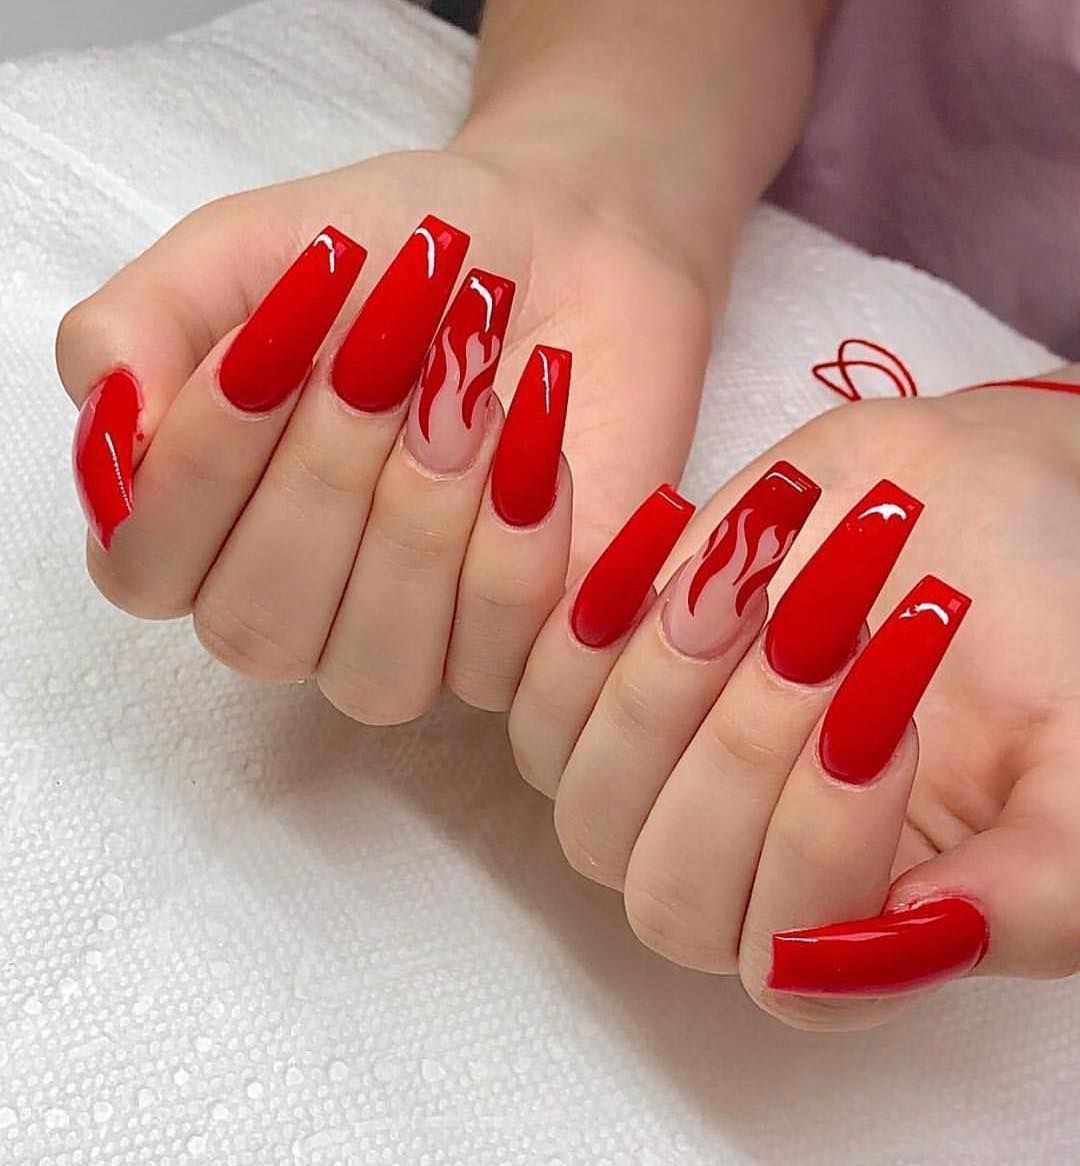 Diy Soap Decor Crafts Diy For Kids Spring Decor Birthday Nail Burgundy Nail Garden For In 2020 Glow Nails Red Acrylic Nails Red Nail Art Designs